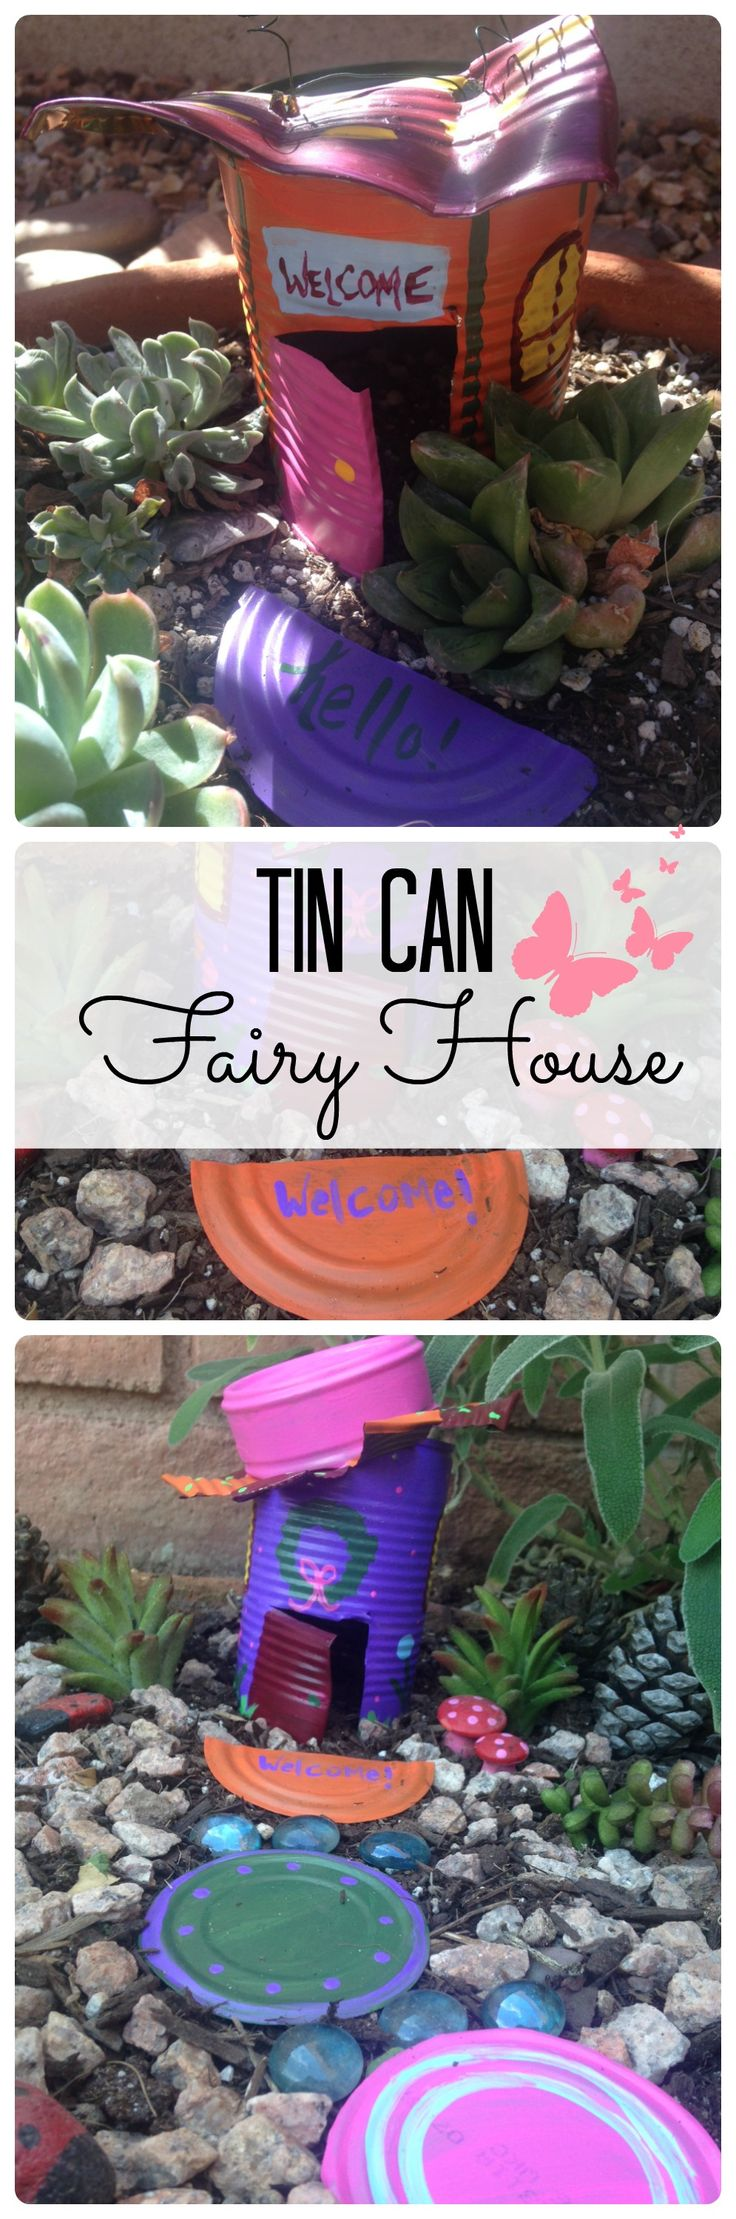 Save those tin cans! Create your garden's cutest, custom fairy house from a tin can using craft paints, floral wire. #fairygarden #gardenideas #tincancrafts #springday